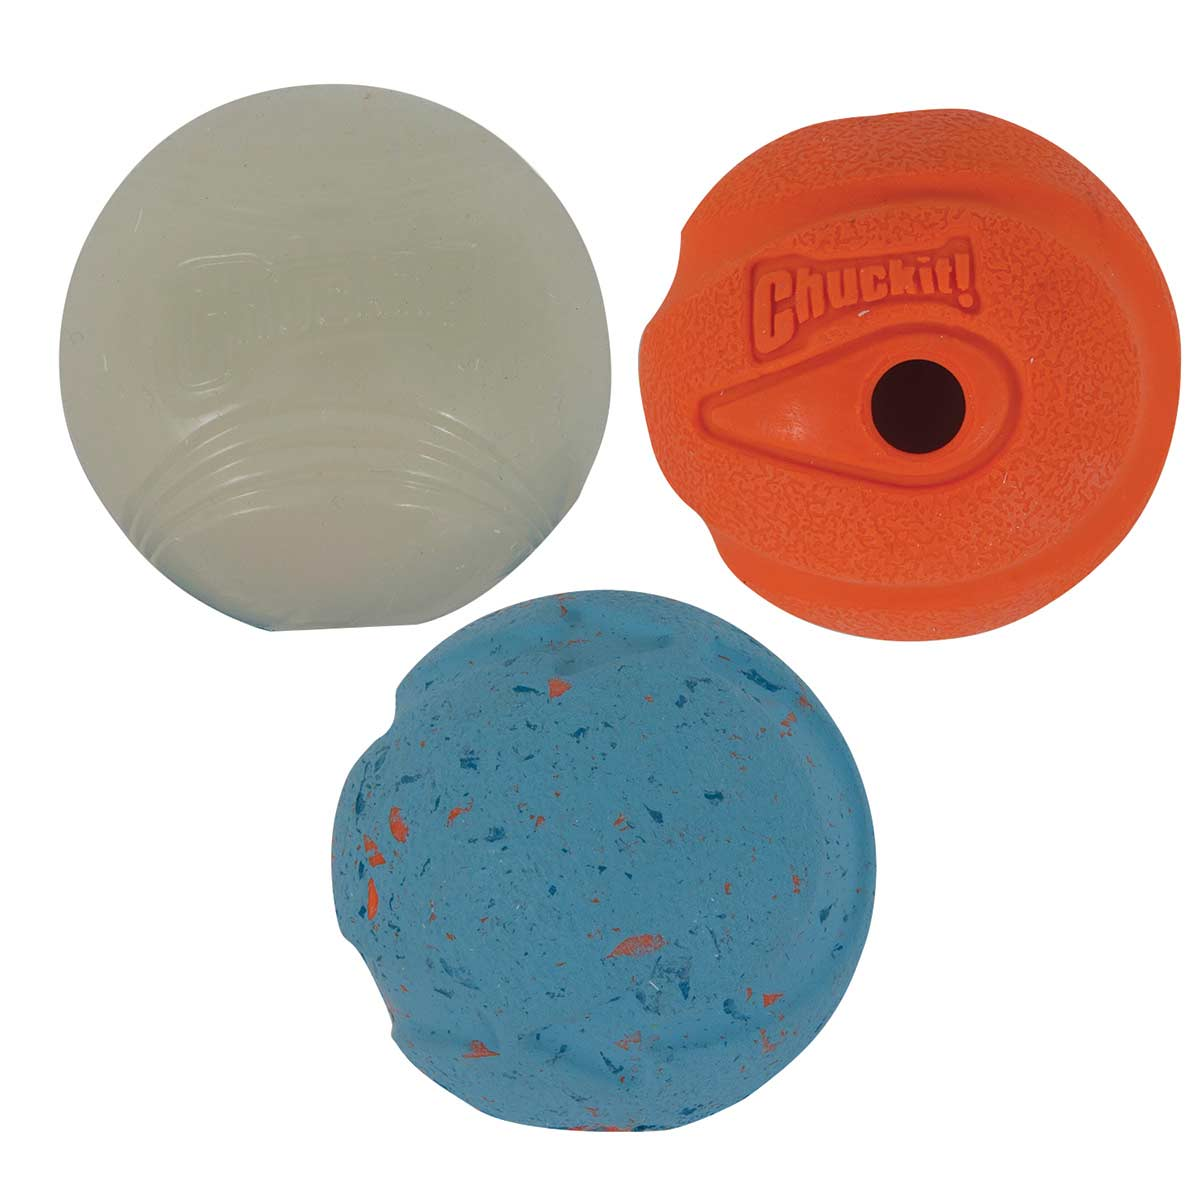 Chuckit! Medley Ball Set Small 3 Pack - Blue, Orange and White